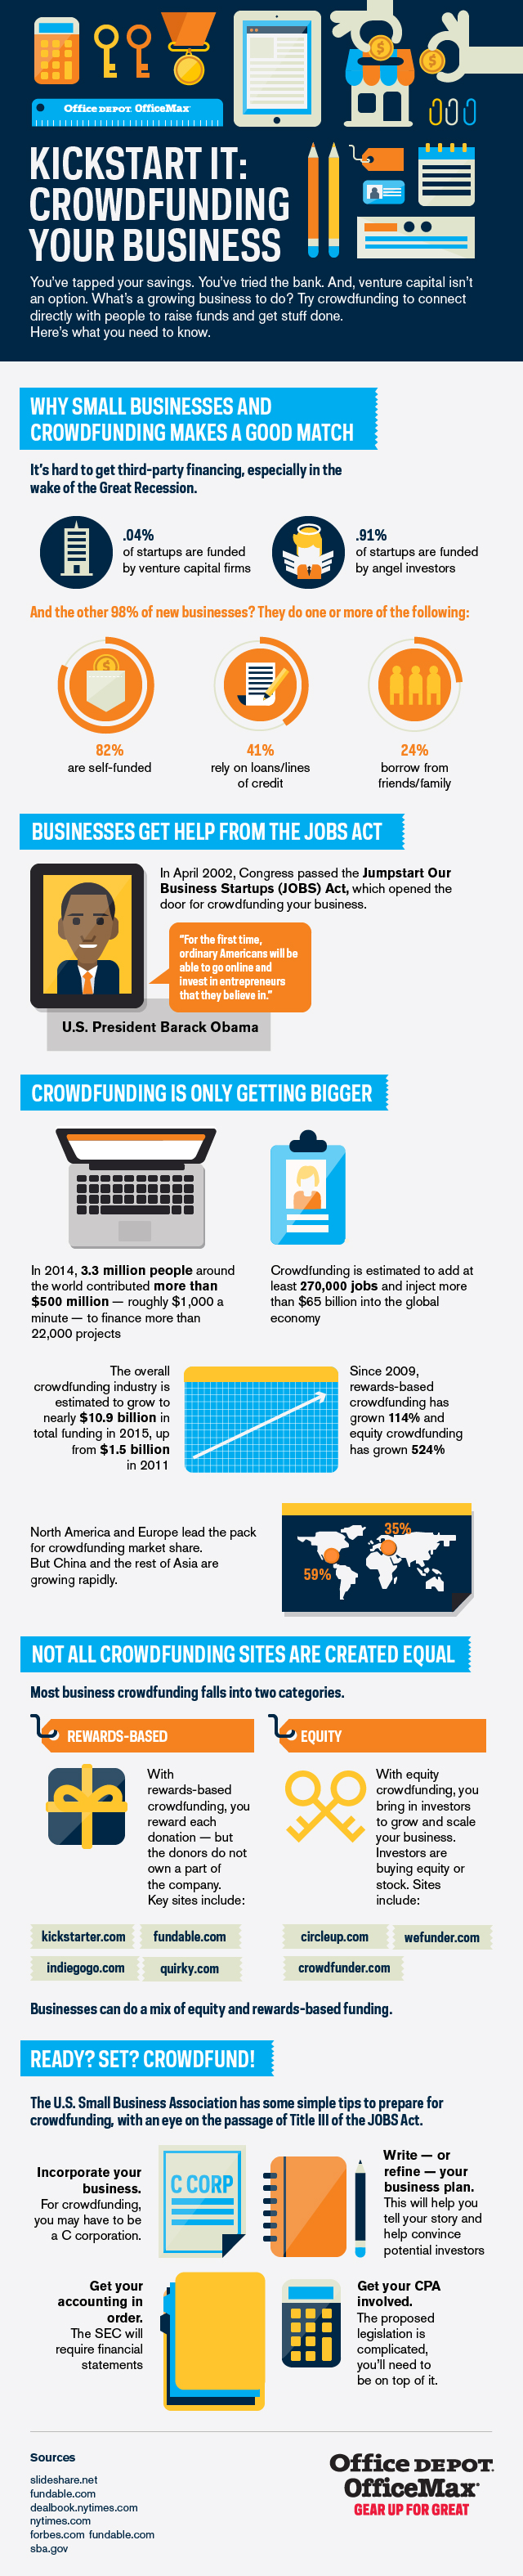 Kickstart It Crowdfunding Your Business Infographic